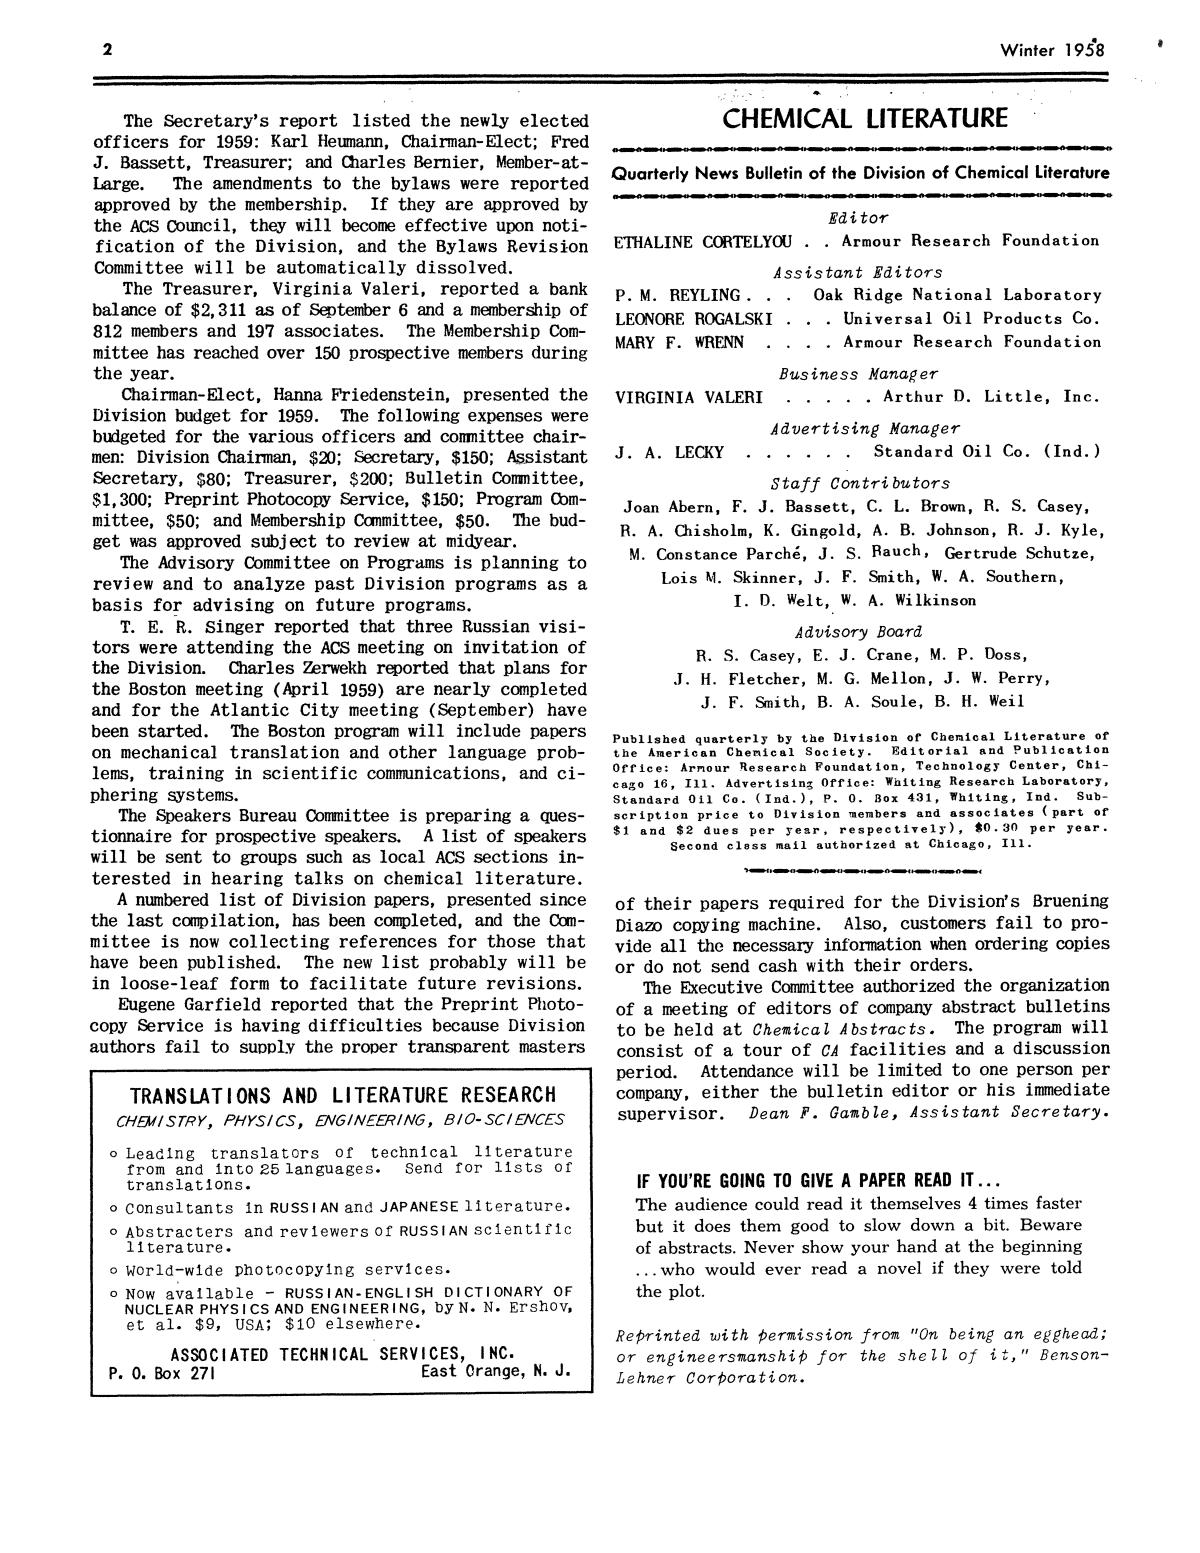 Chemical Literature, Volume 10, Number 4, Winter 1958                                                                                                      2